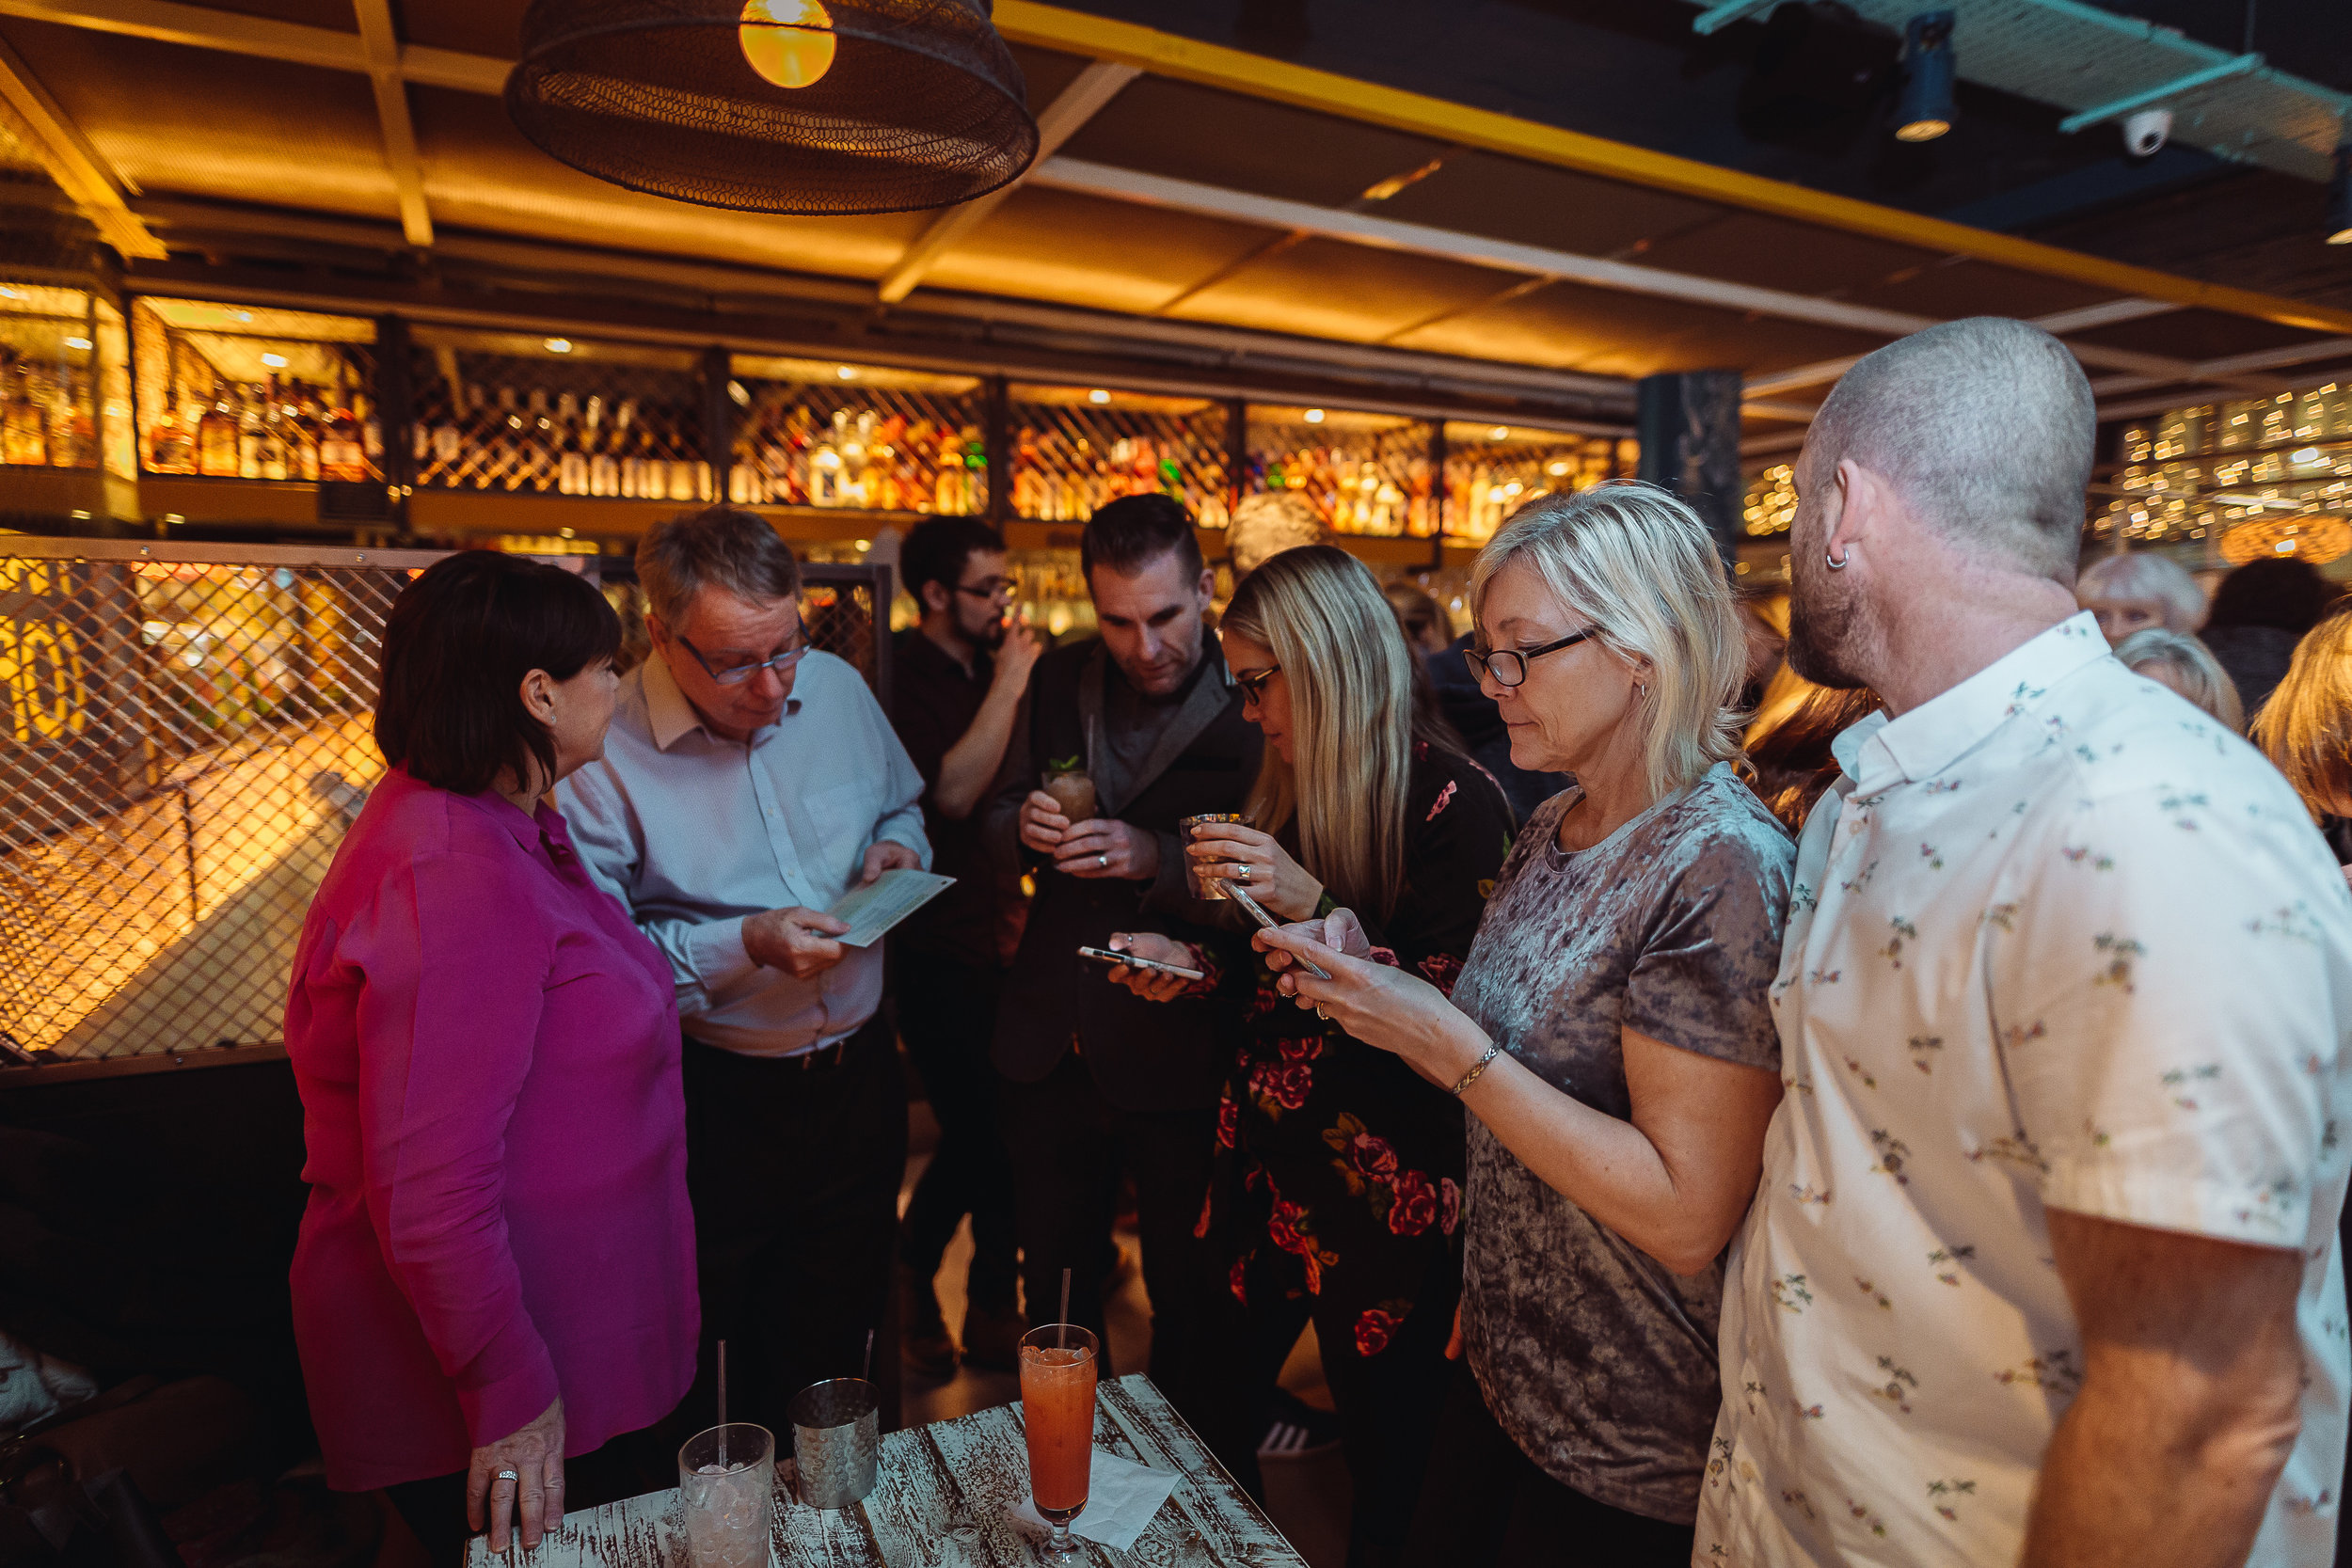 The Winchester Bloggers family certainly enjoyed Winchester's latest bar/restaurant